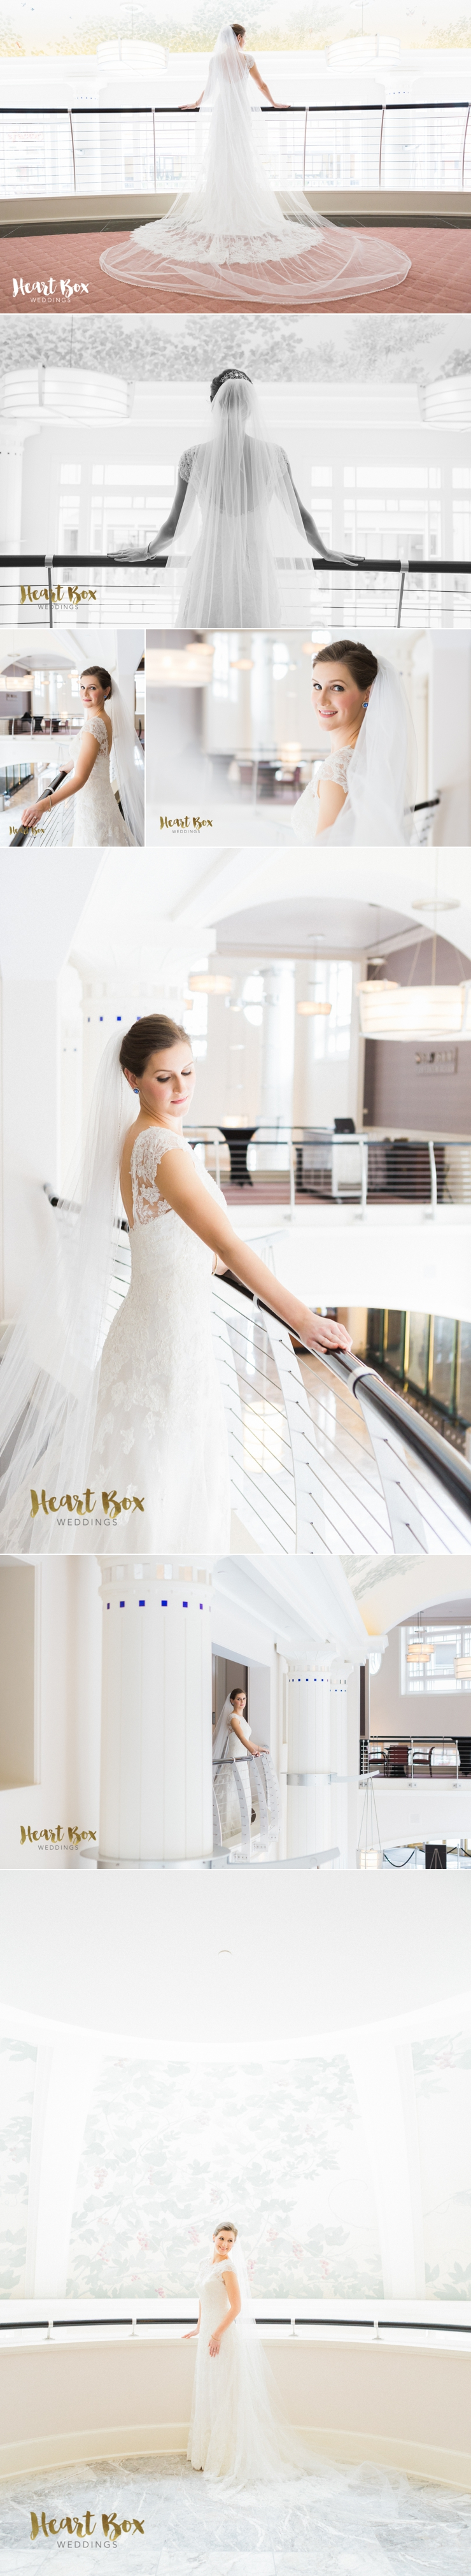 Mary Styrsky Bridal Collages 1.jpg